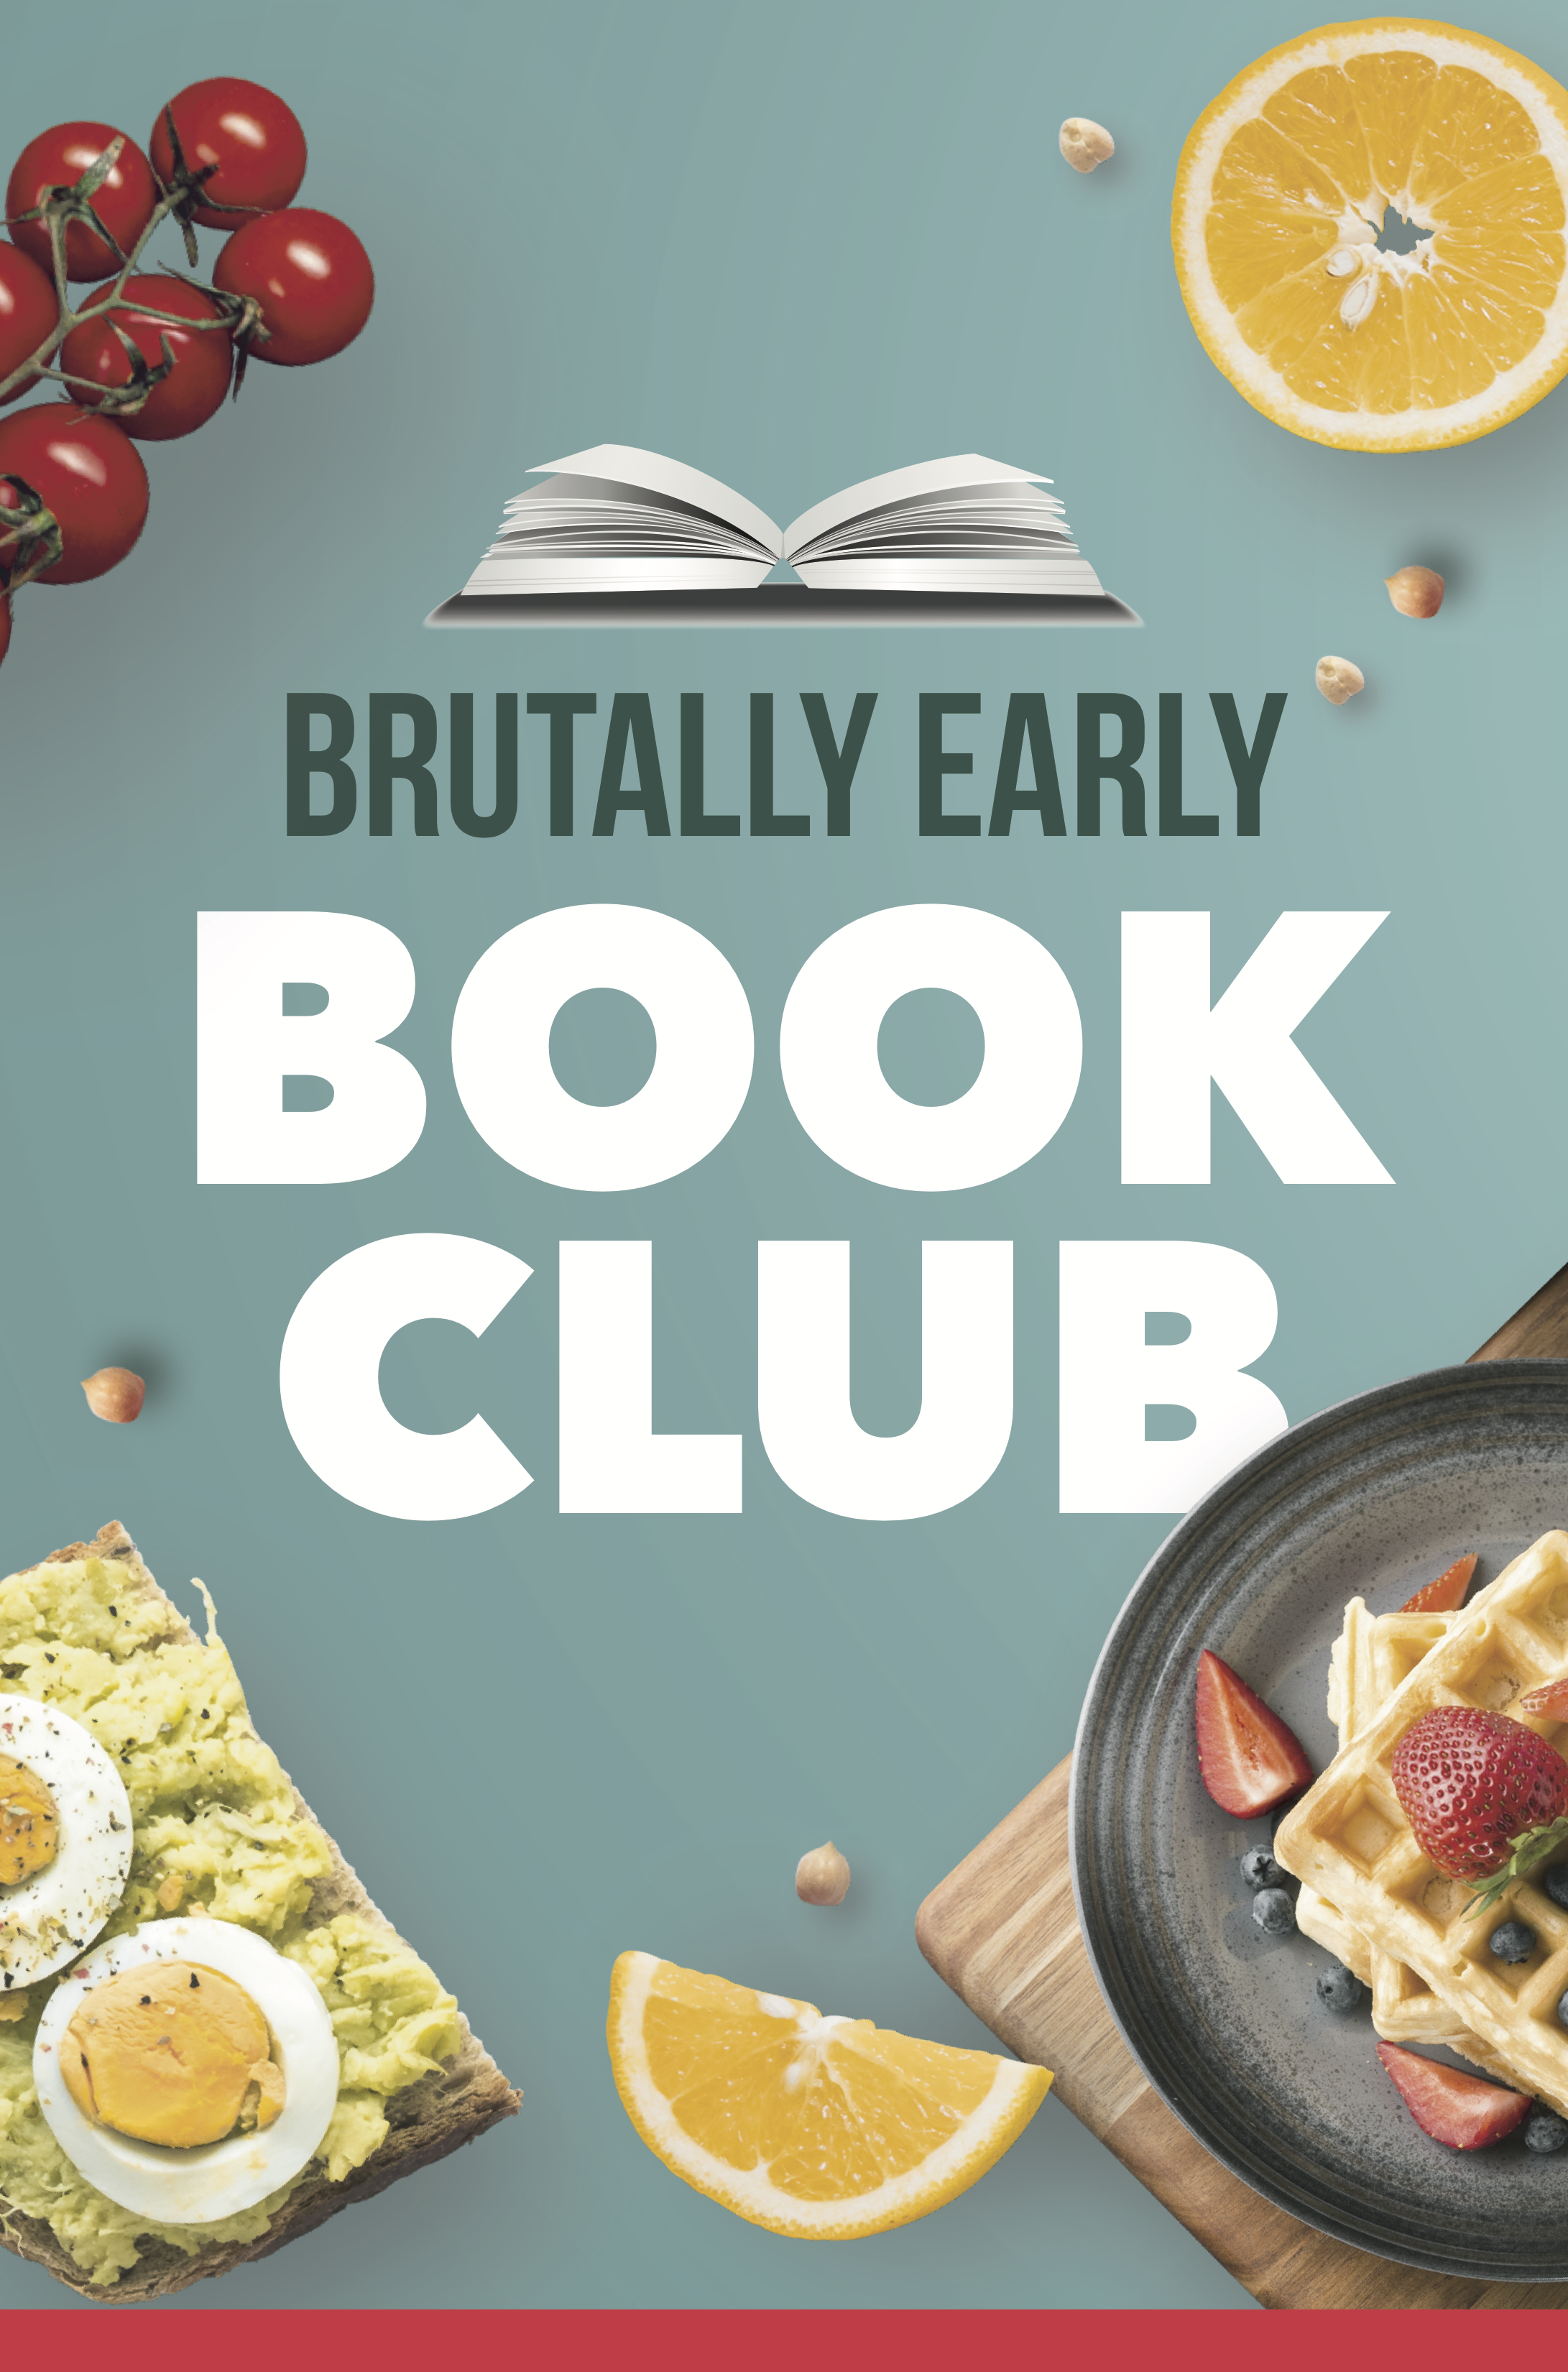 brutally early book club